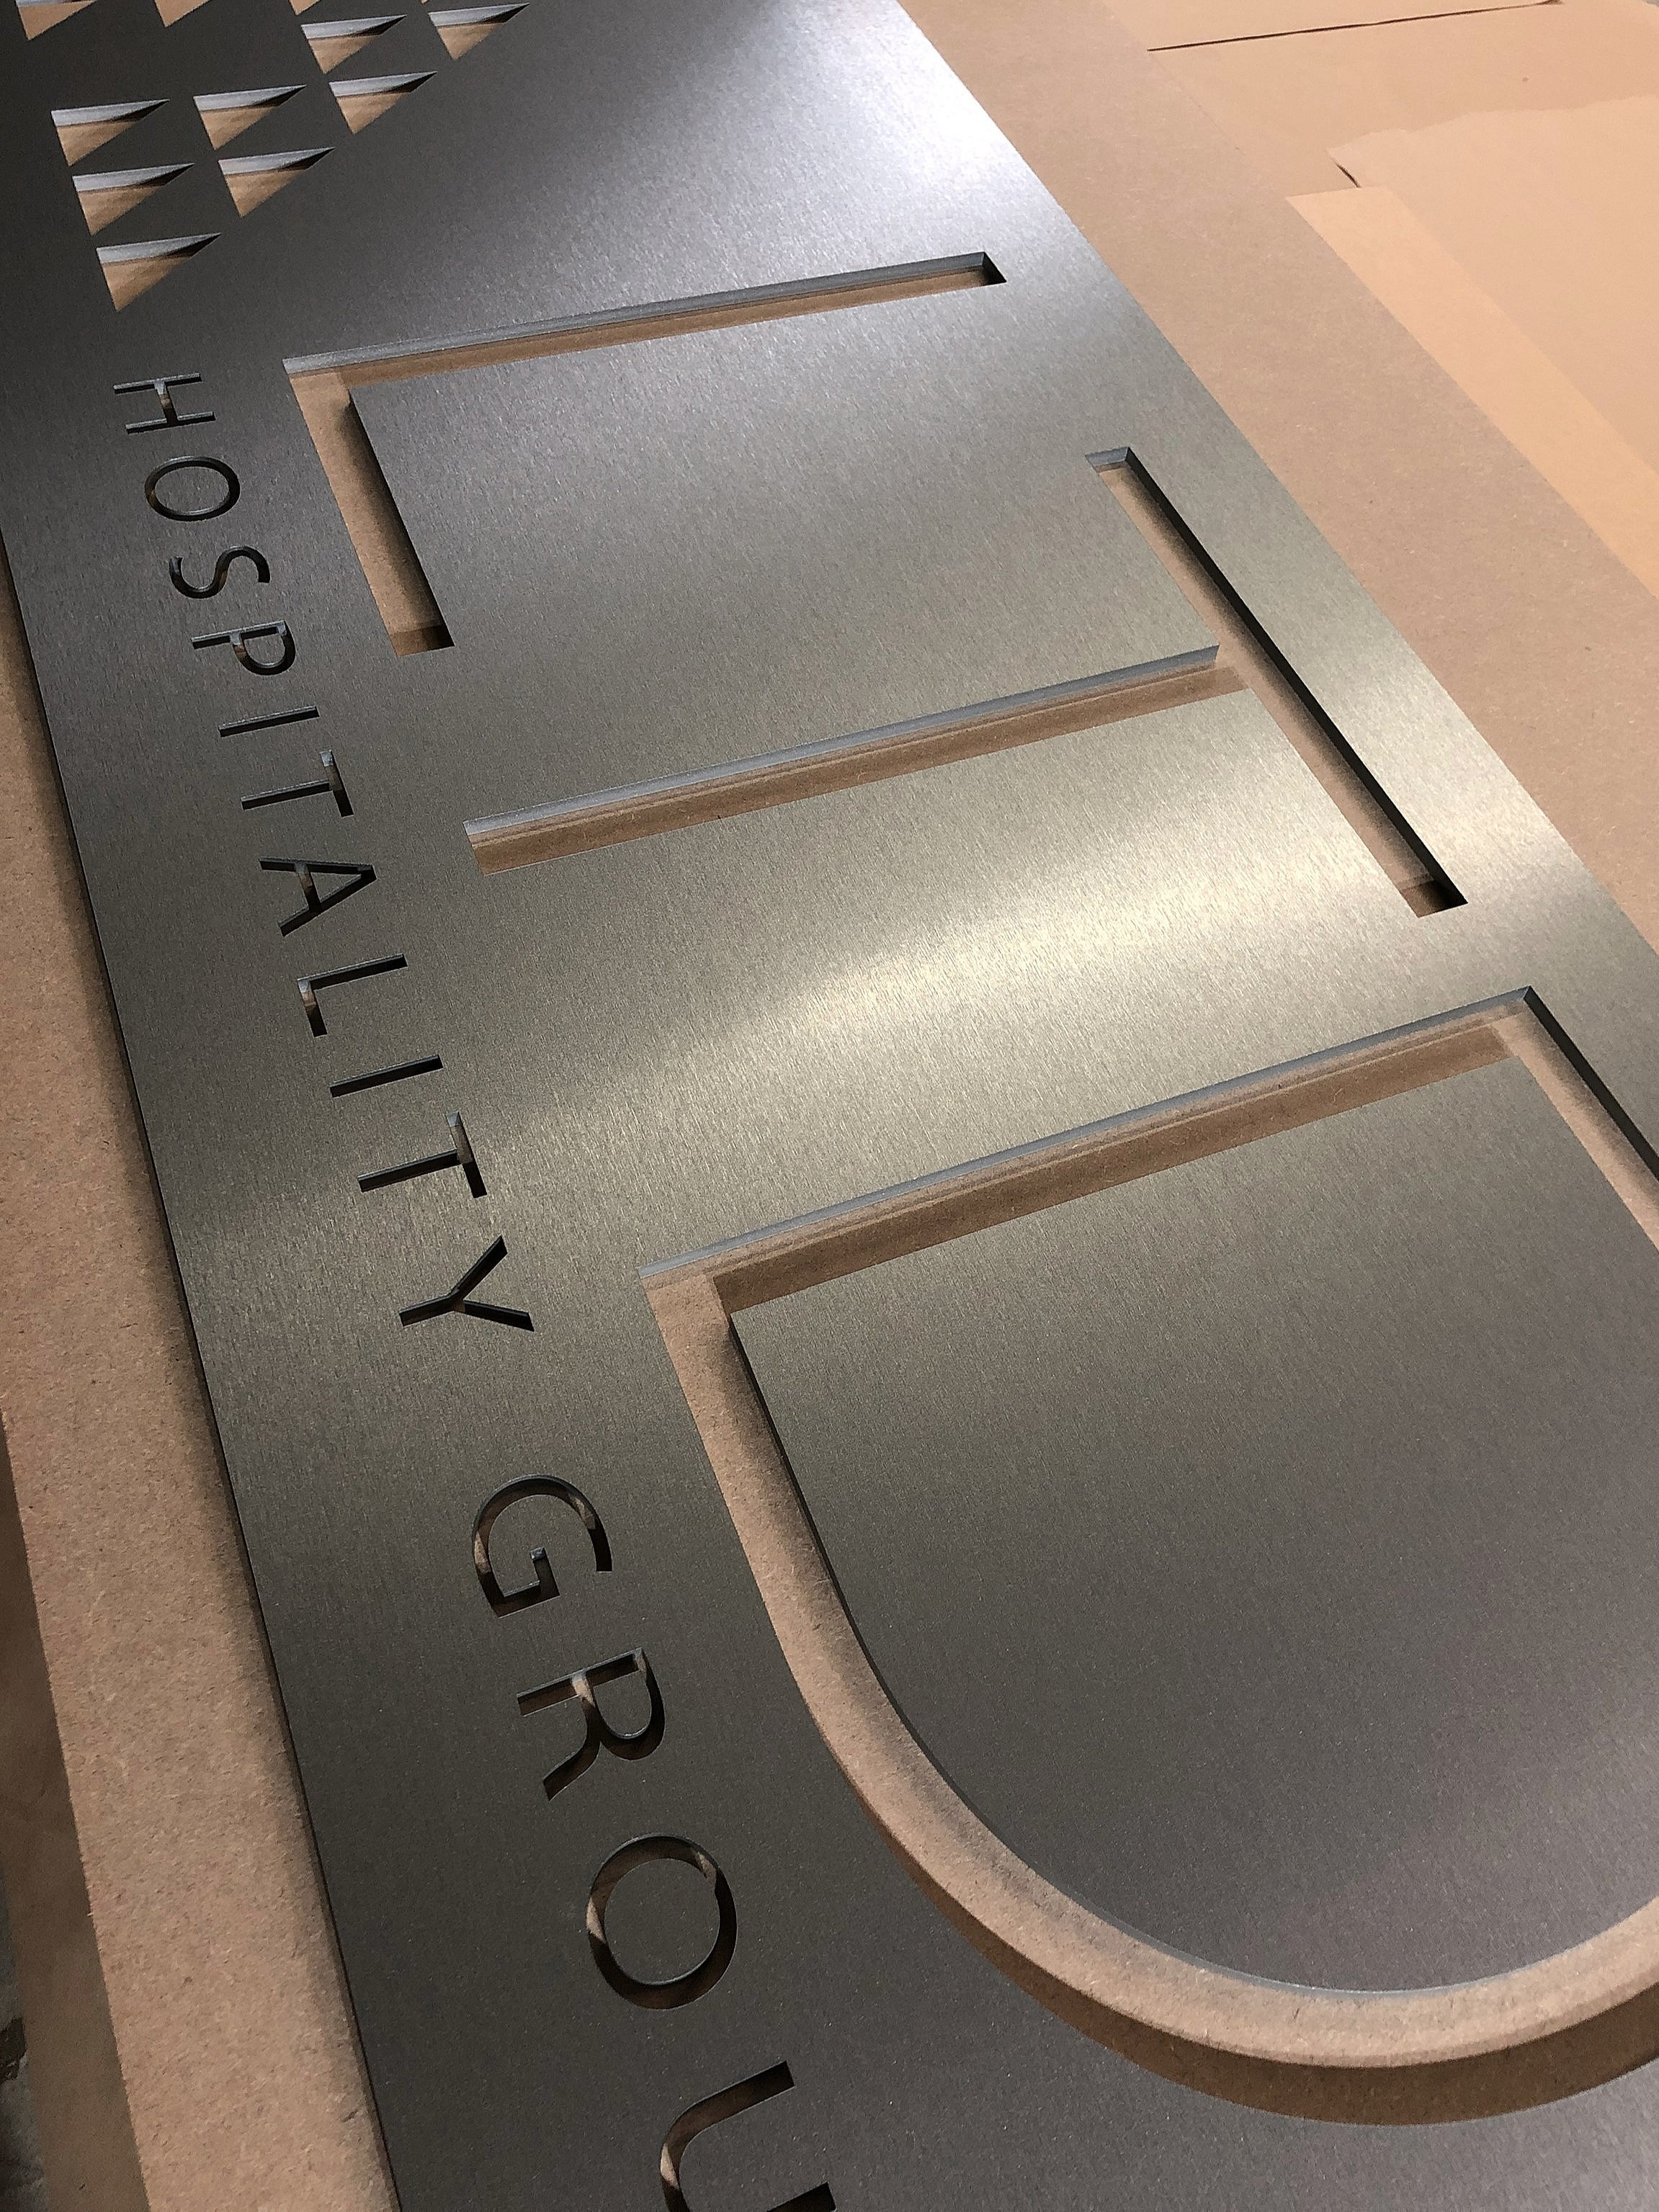 Laser cut office sign with brushed titanium finish.